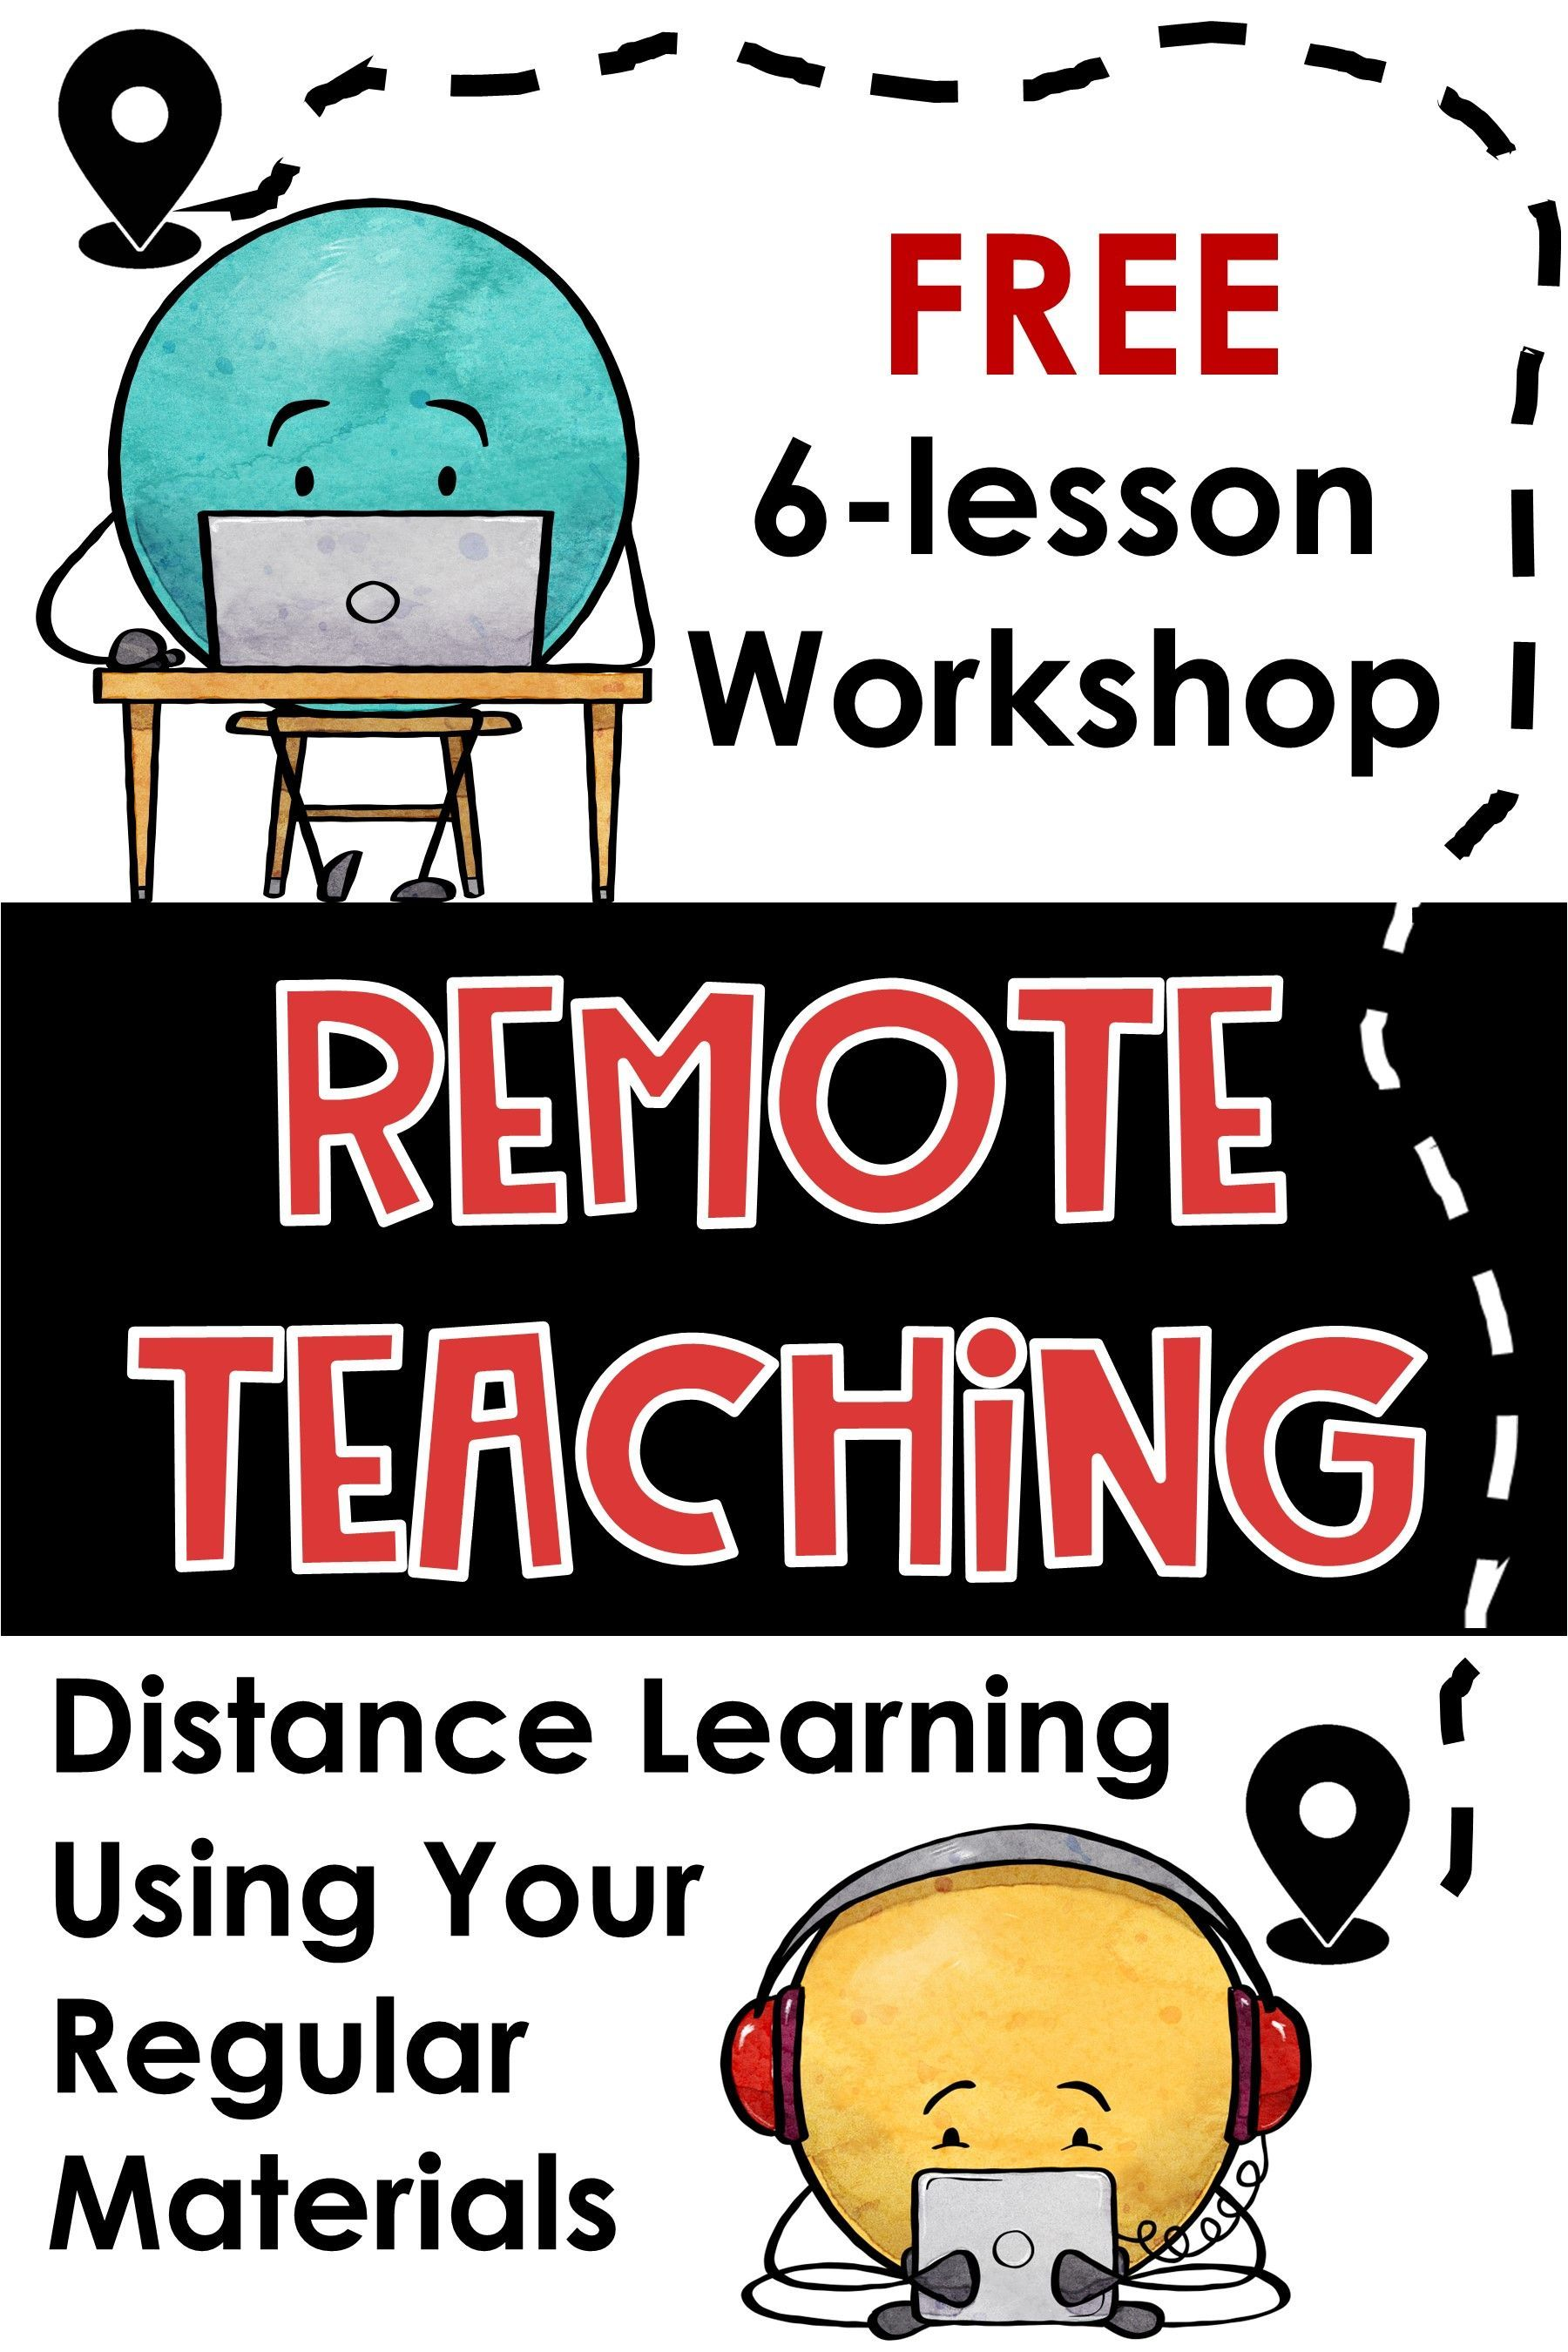 FREE Remote Learning Workshop for Teachers